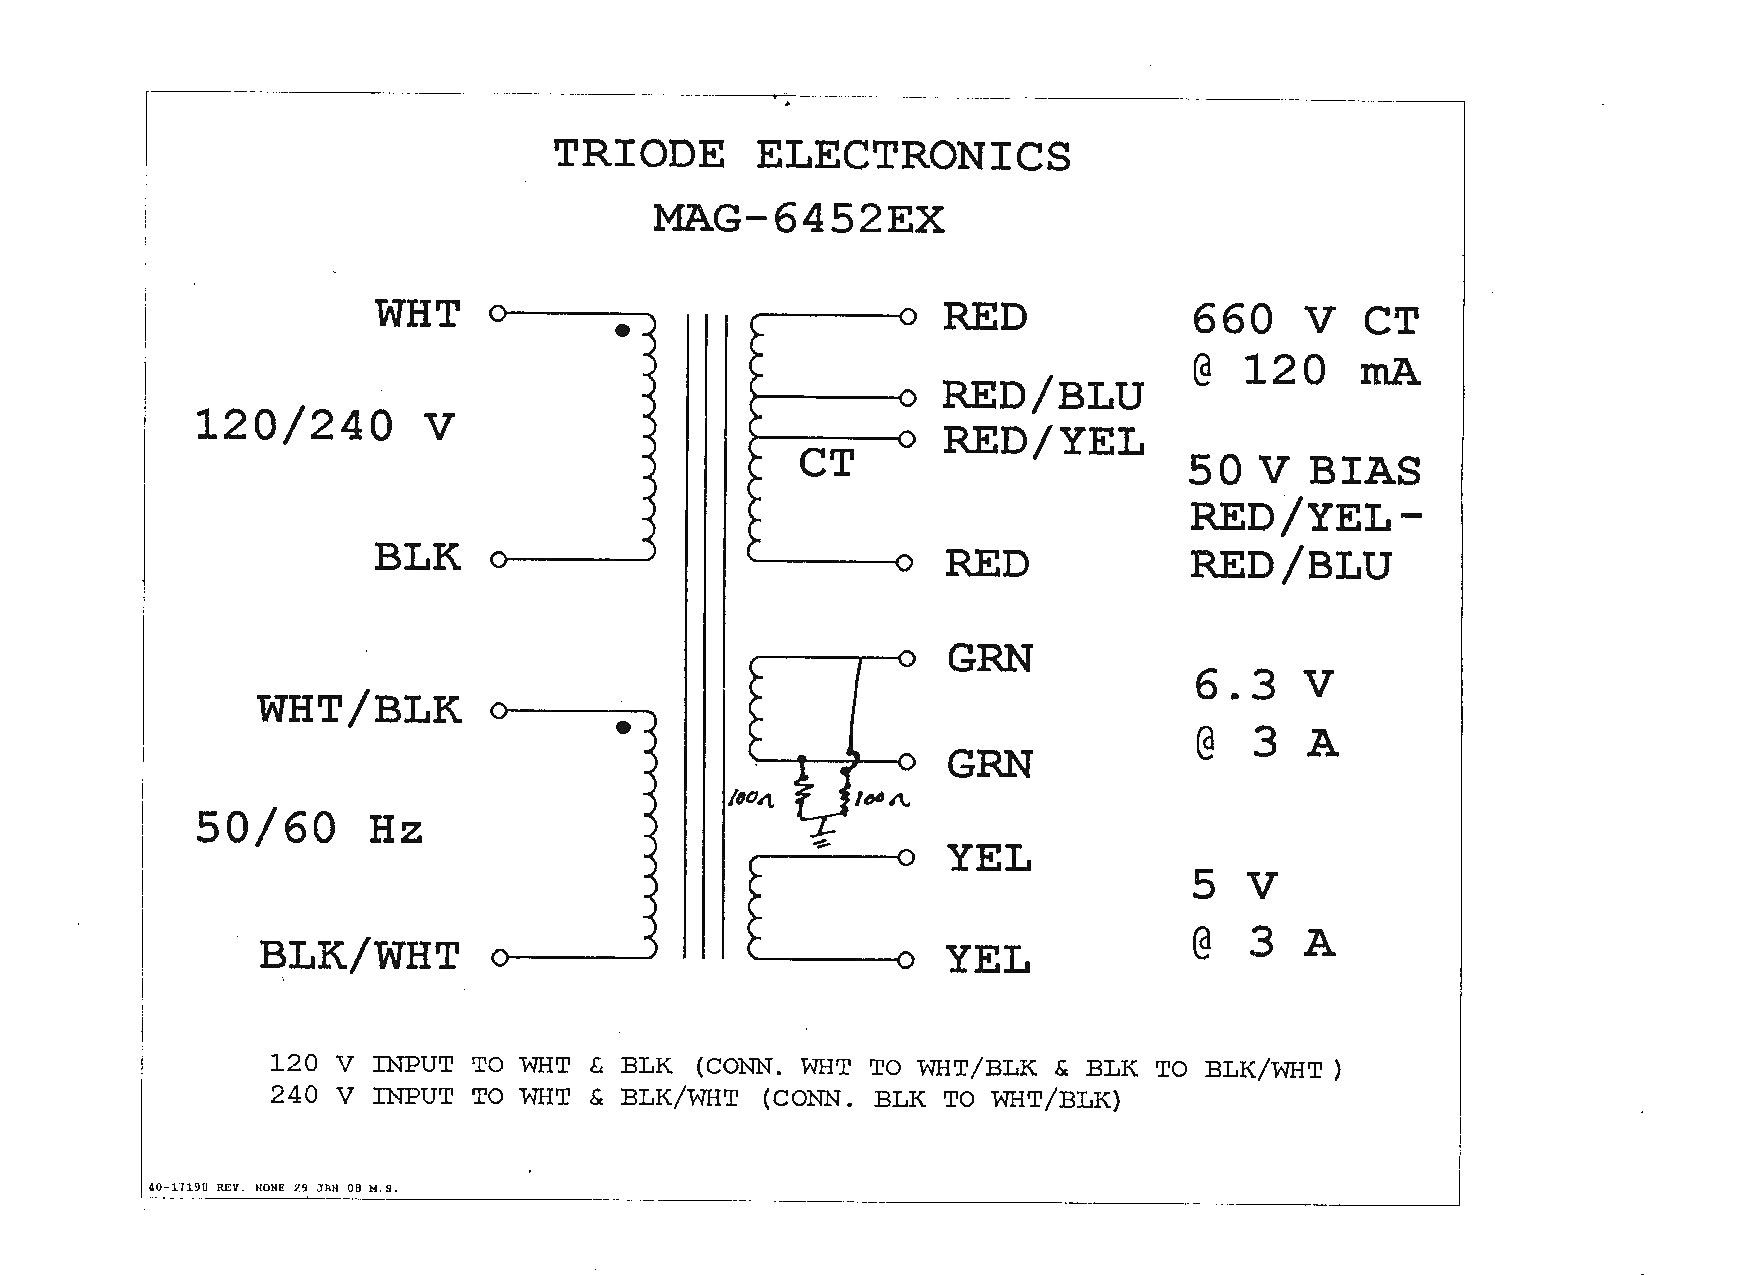 awesome transformer wiring diagram single phase in 2020